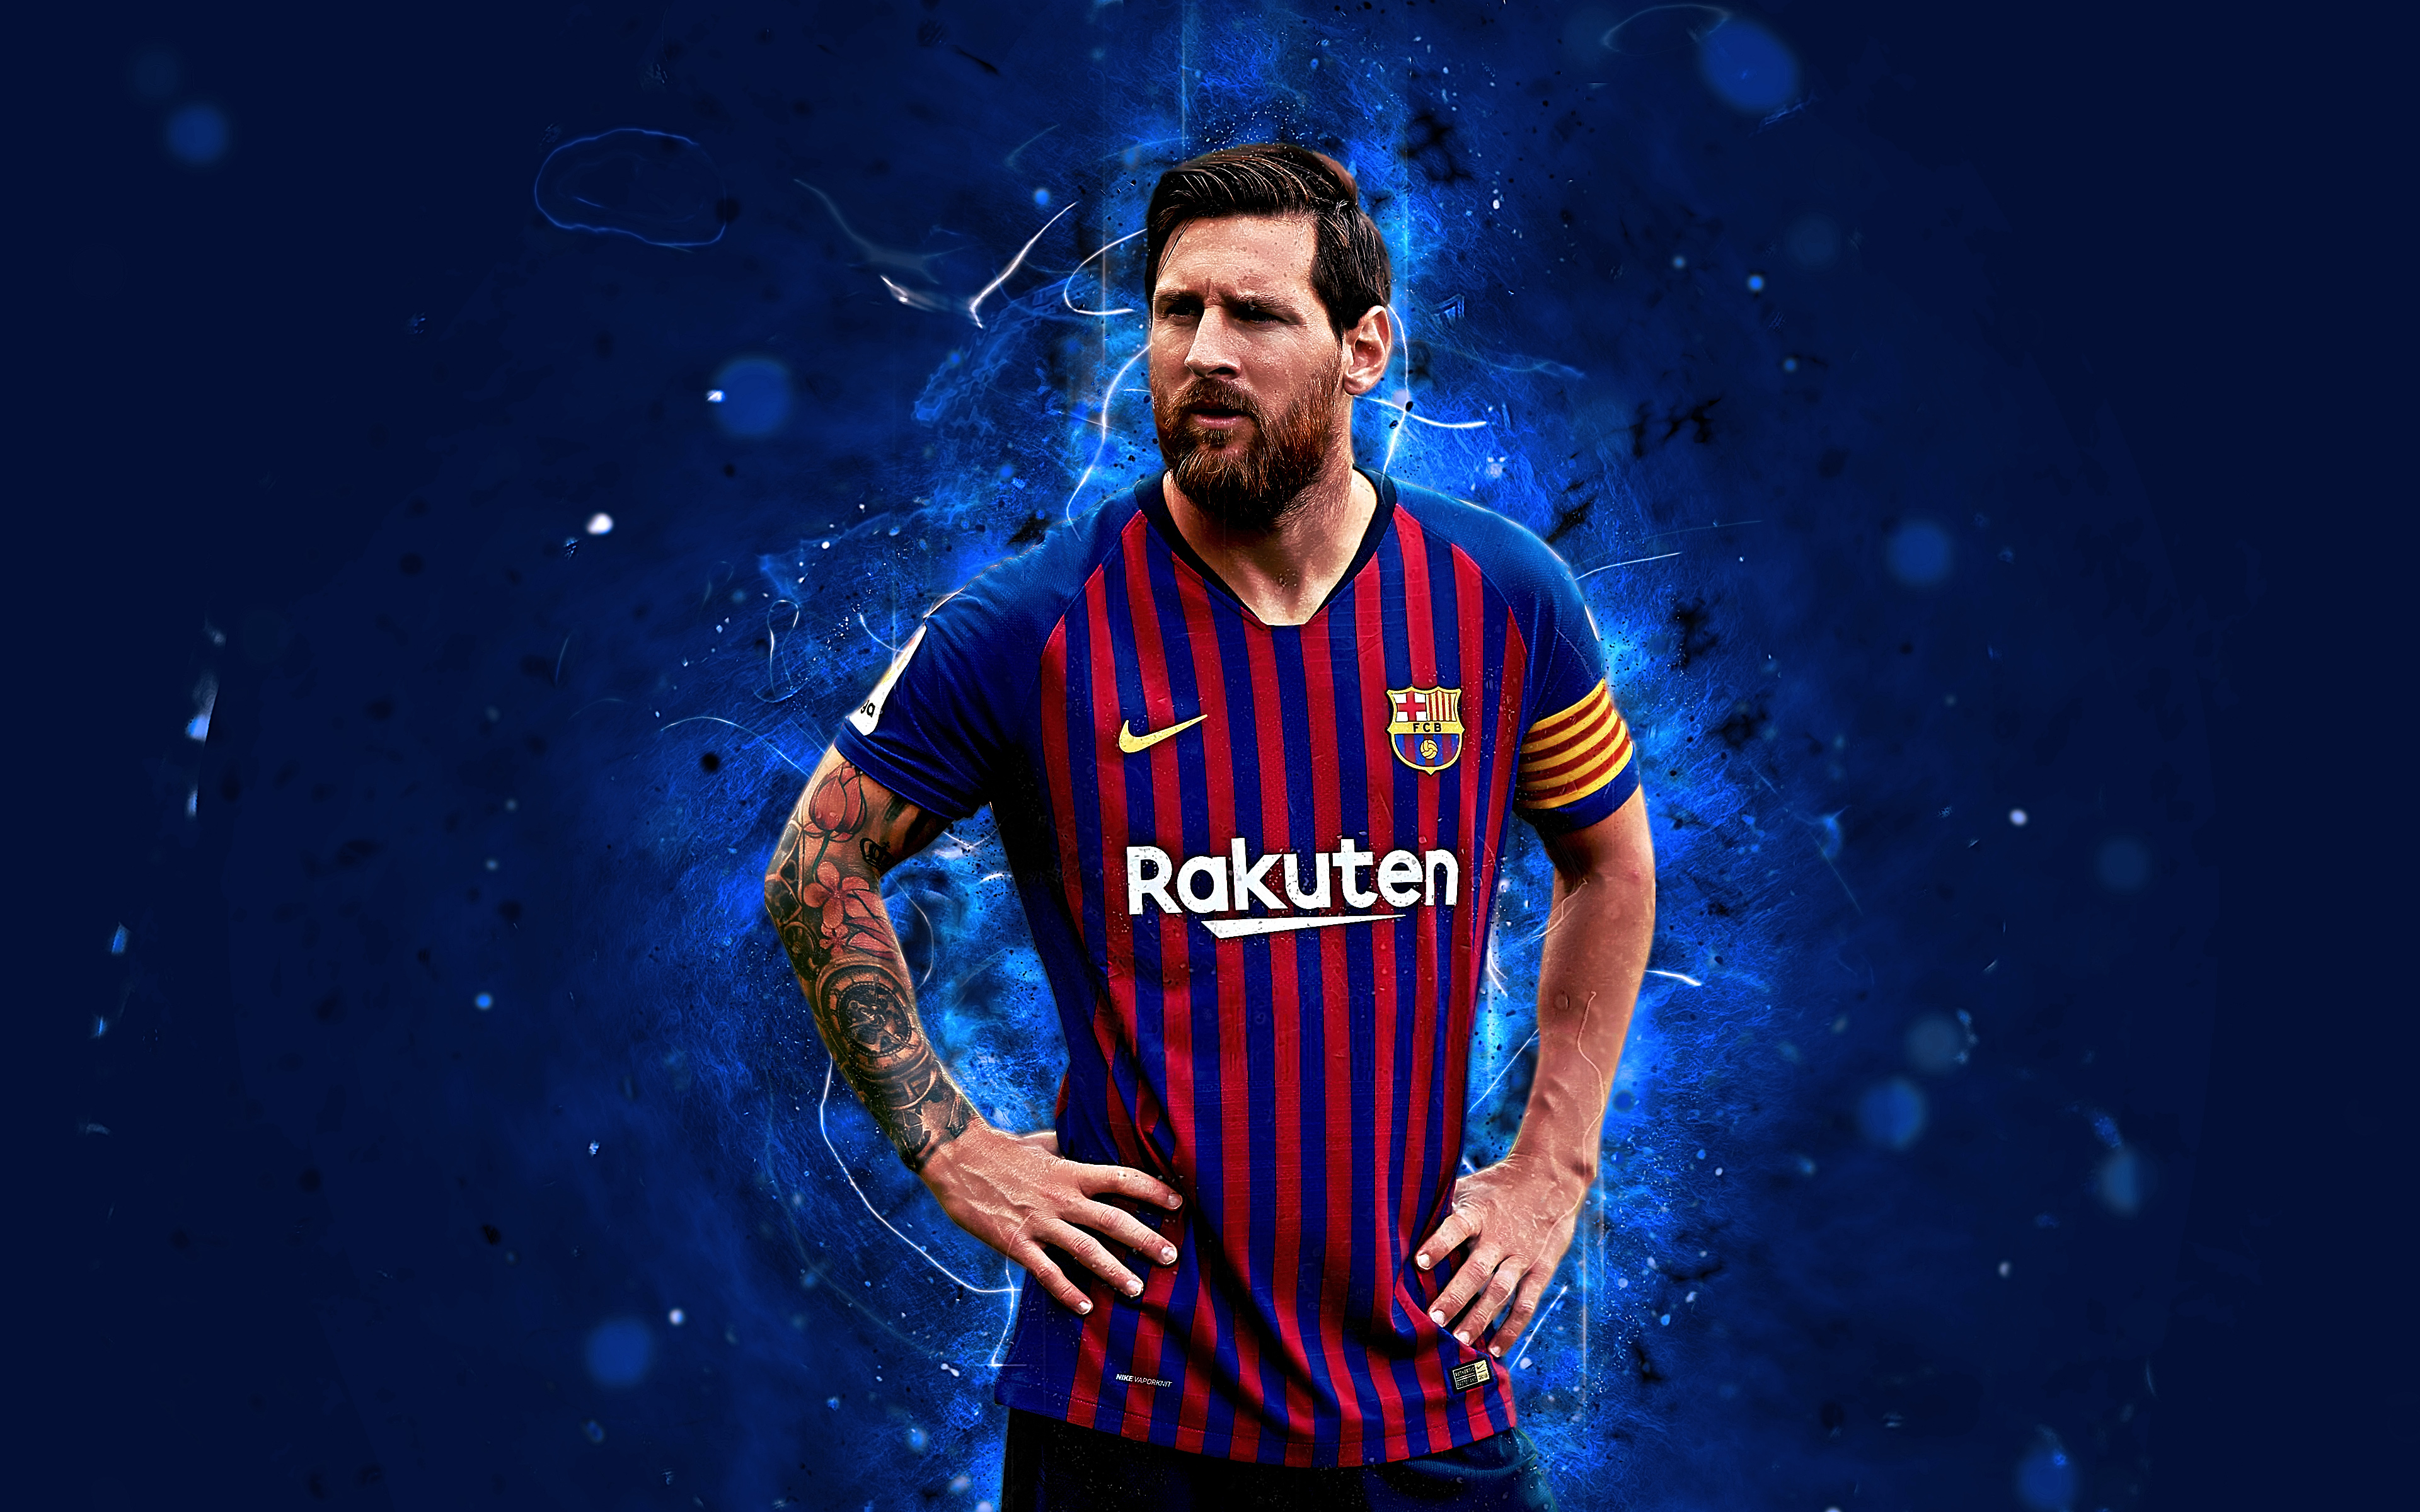 Messi 2019 Wallpapers - Top Free Messi 2019 Backgrounds ...